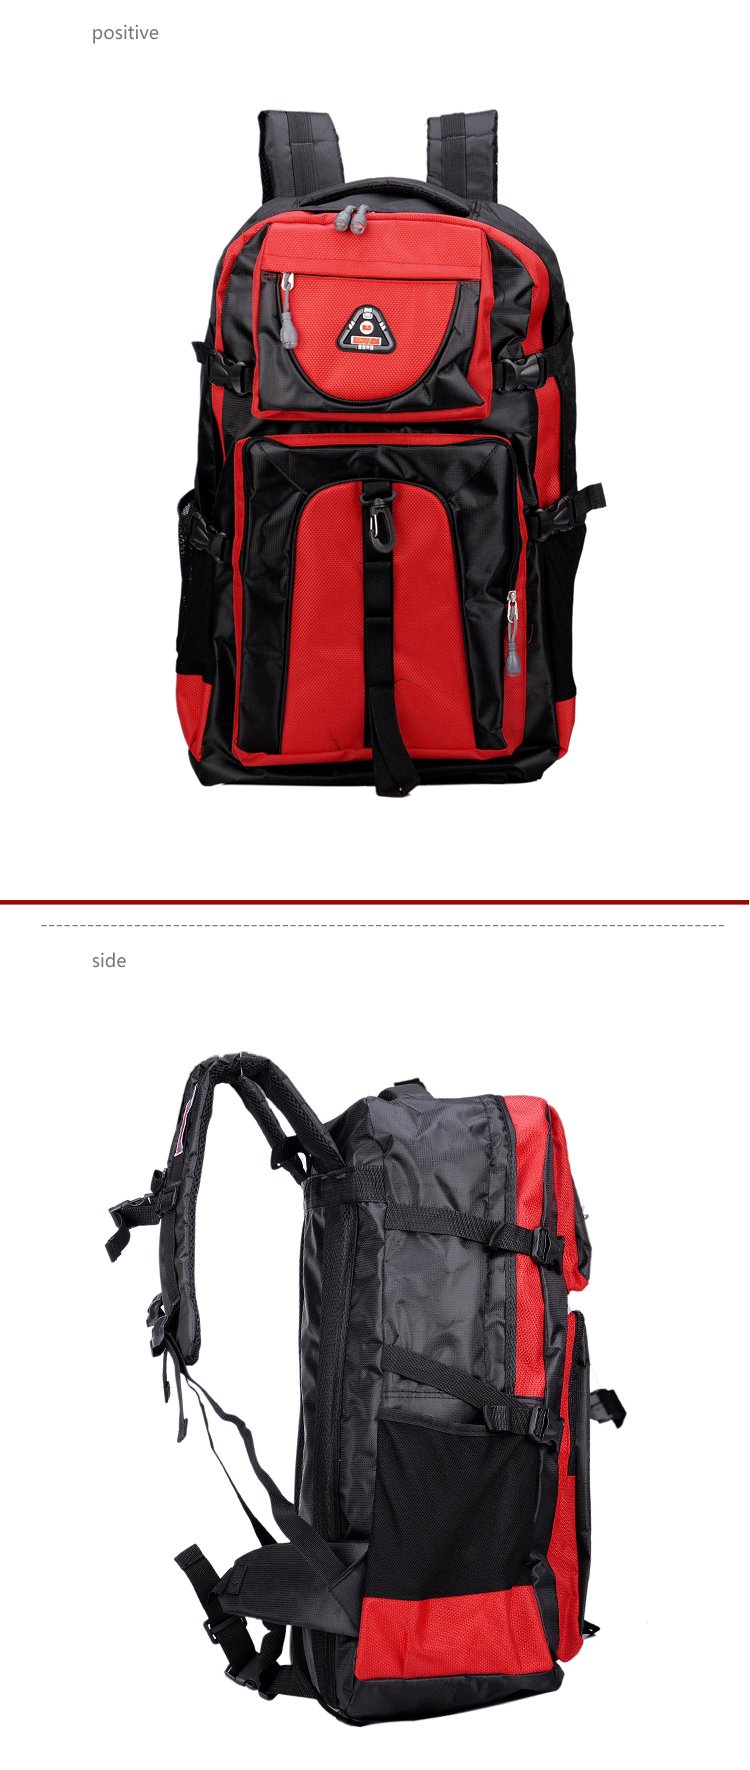 17 Senkey style 60L Large-capacity Travel Backpack Men Women Fashion Backpack To Casual Waterproof Laptop Student school Bag 5